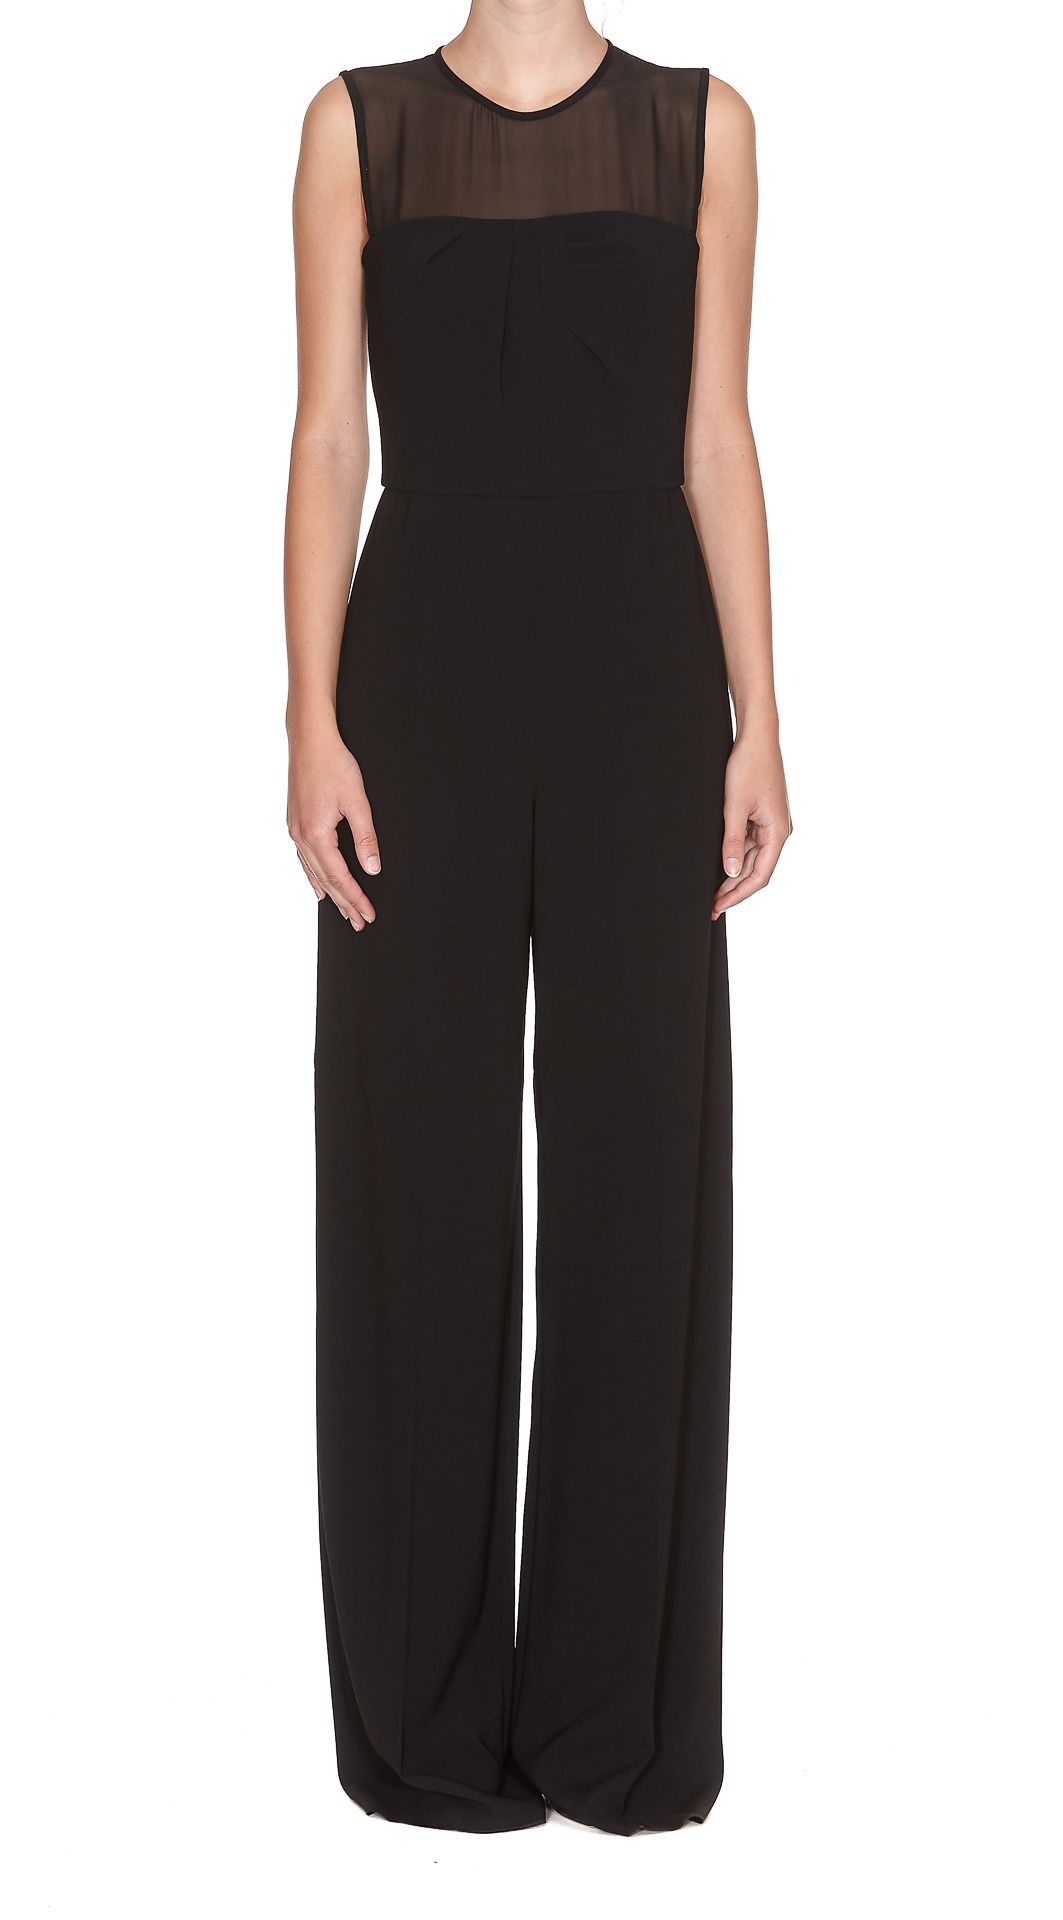 CLUNY JUMPSUIT